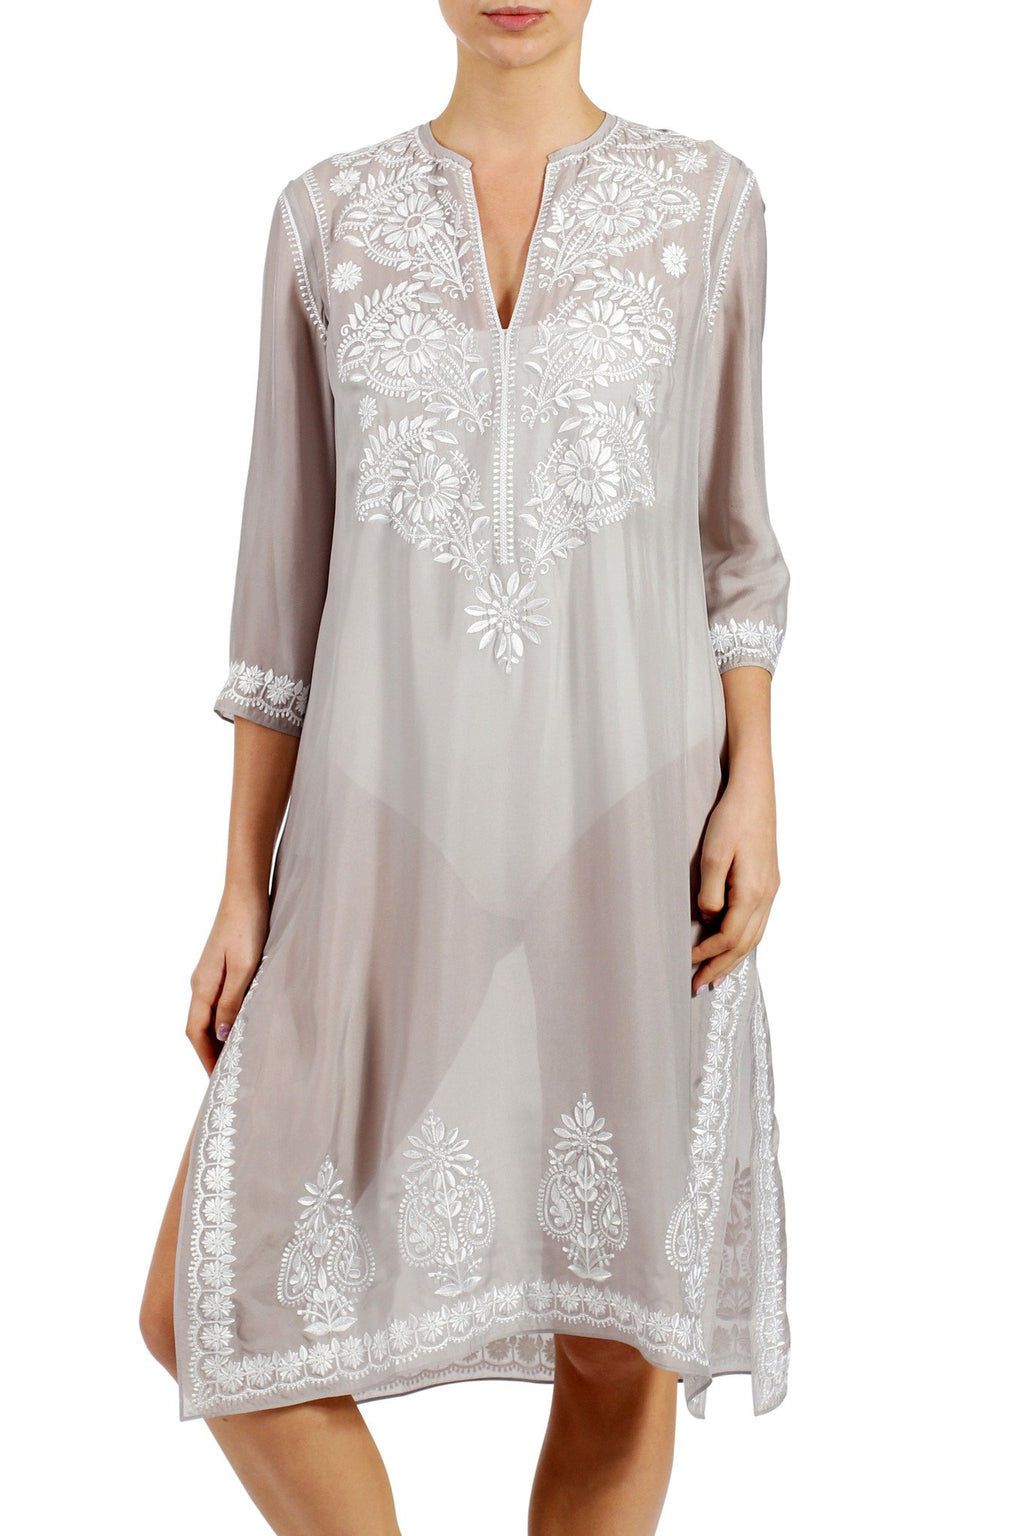 Silk Embroidered Midi Length Tunic Tunics Marie France Van Damme Silver White 0